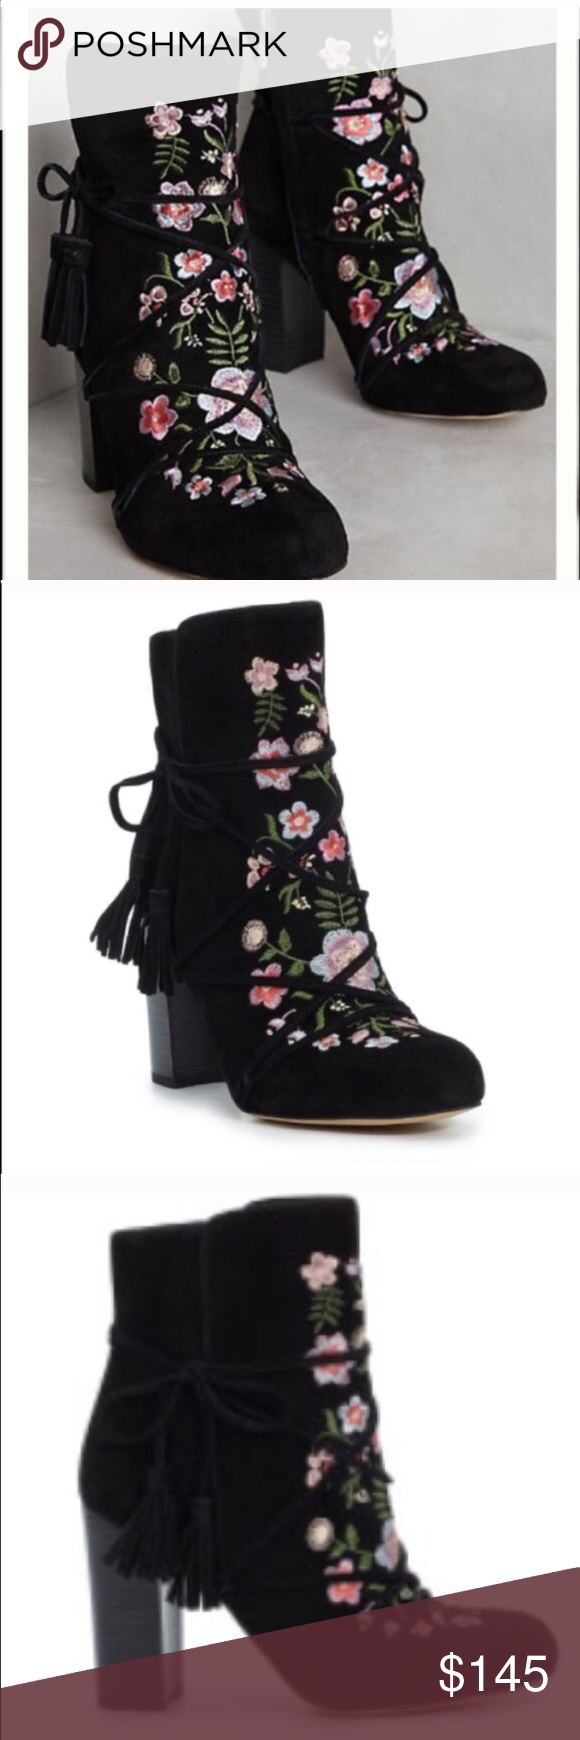 dffb2bf9981486 Spring Floral Bootie Floral bootie by Sam Eldeman. Tassels on side.  Conversation piece for sure! PRICE FIRM Anthropologie Shoes Ankle Boots    Booties